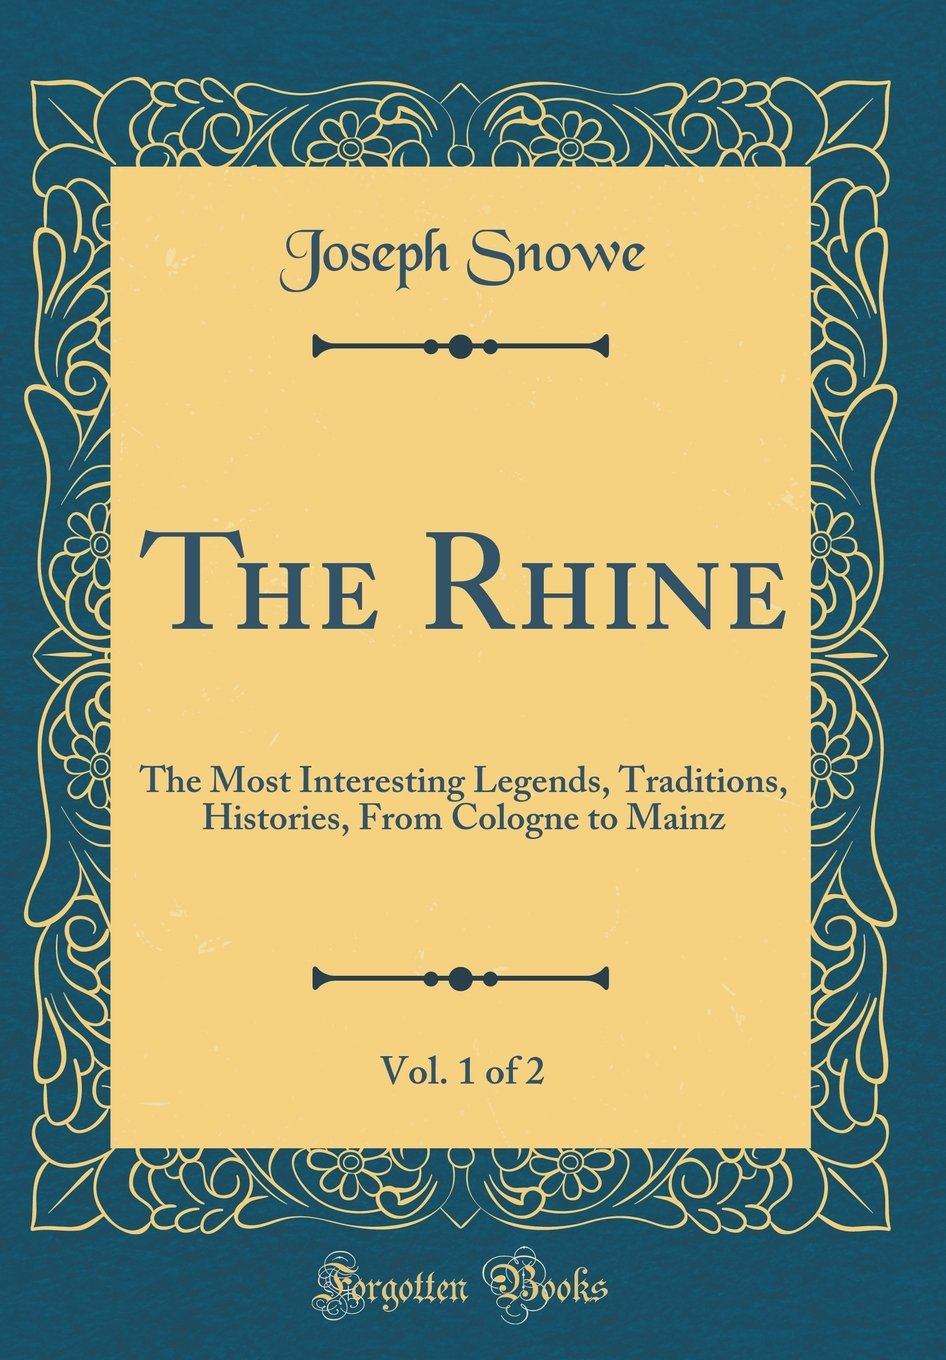 The Rhine, Vol. 1 of 2: The Most Interesting Legends, Traditions, Histories, From Cologne to Mainz (Classic Reprint) pdf epub